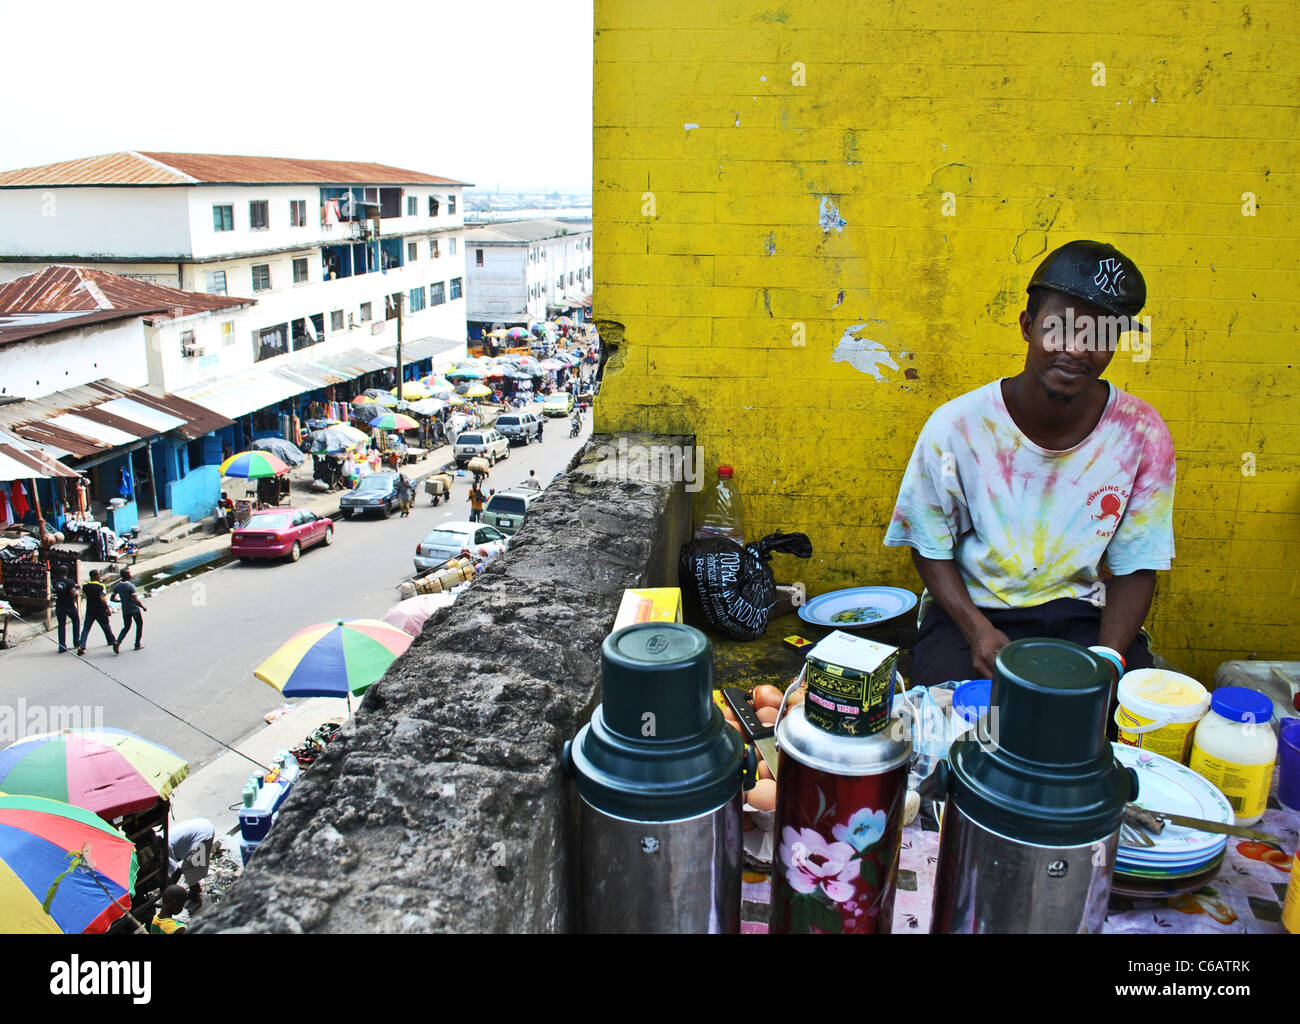 Colourful portrait of a coffee seller in downtown Monrovia, Liberia, West Africa - Stock Image